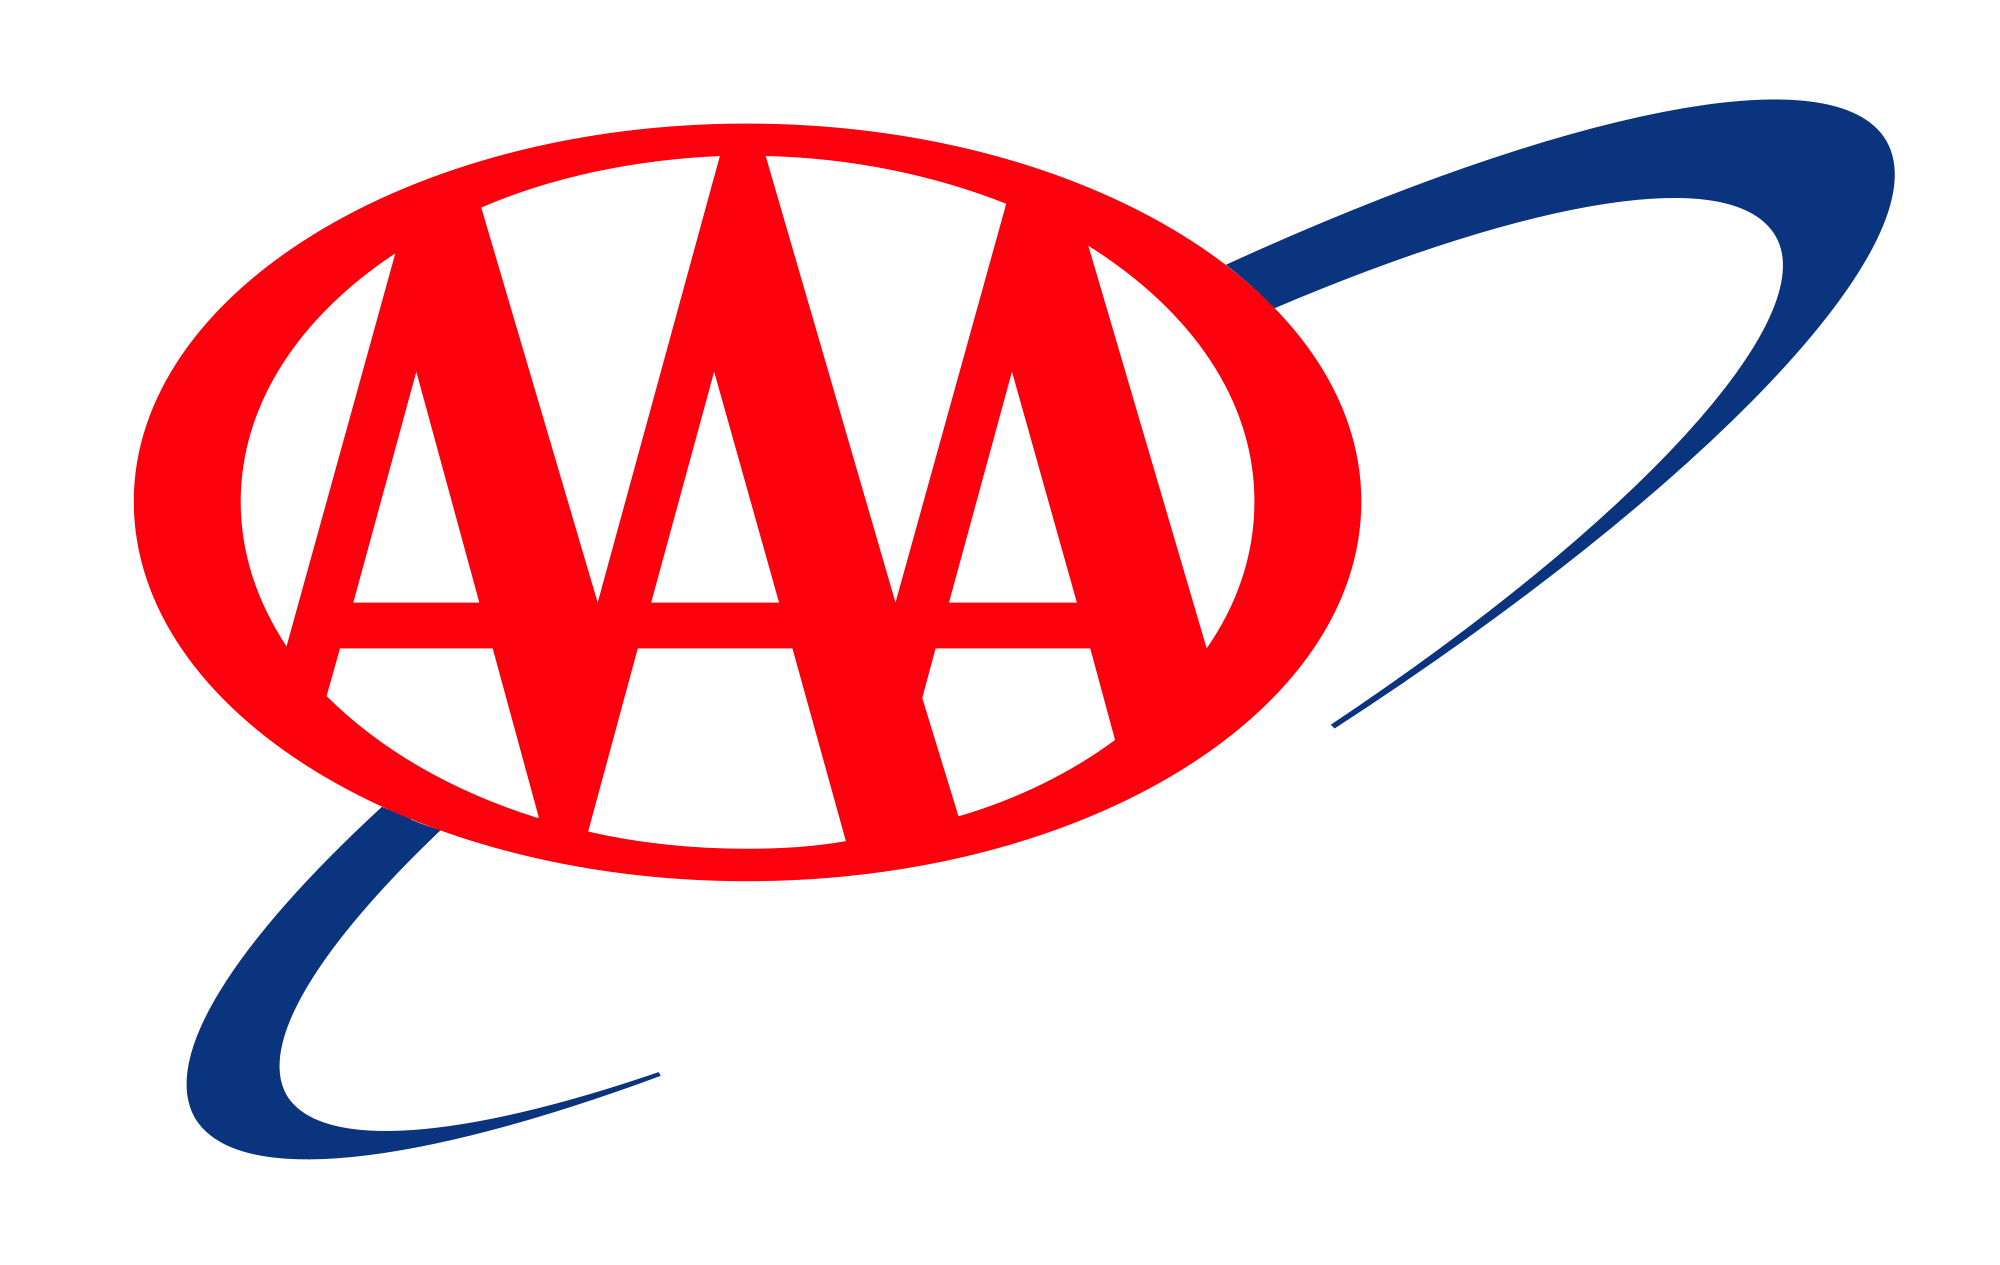 AAA Logo transparent background